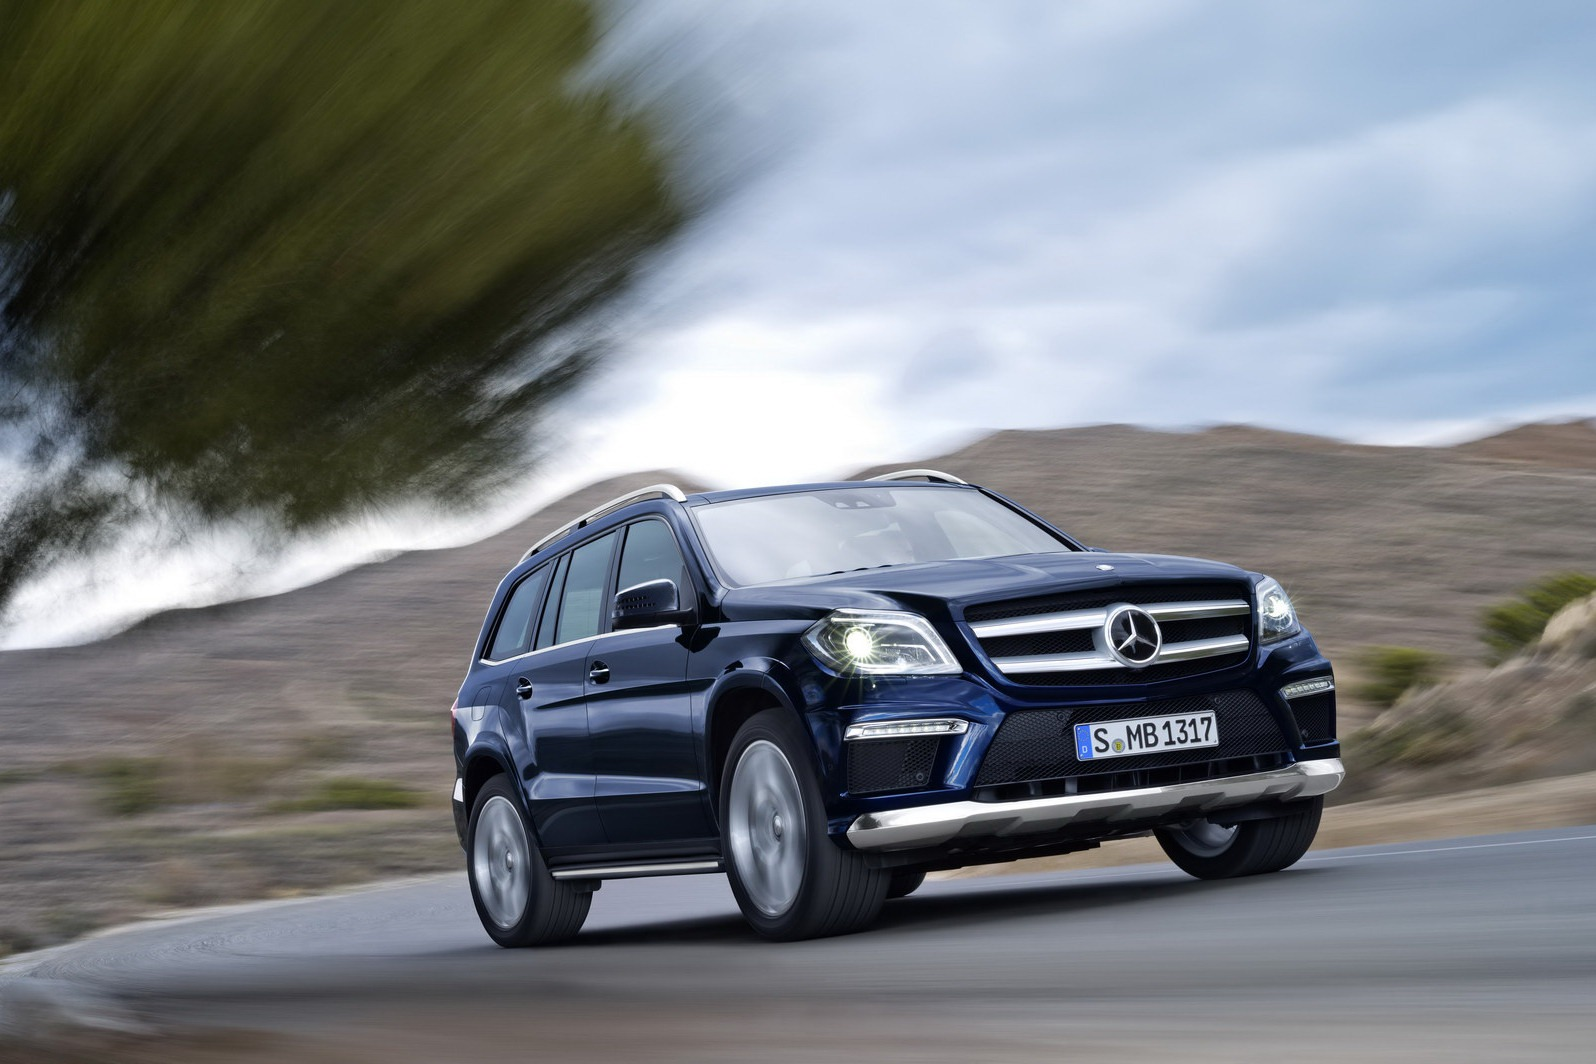 2013 mercedes benz gl class luxury suv unveiled for Mercedes benz gl class mercedes suv